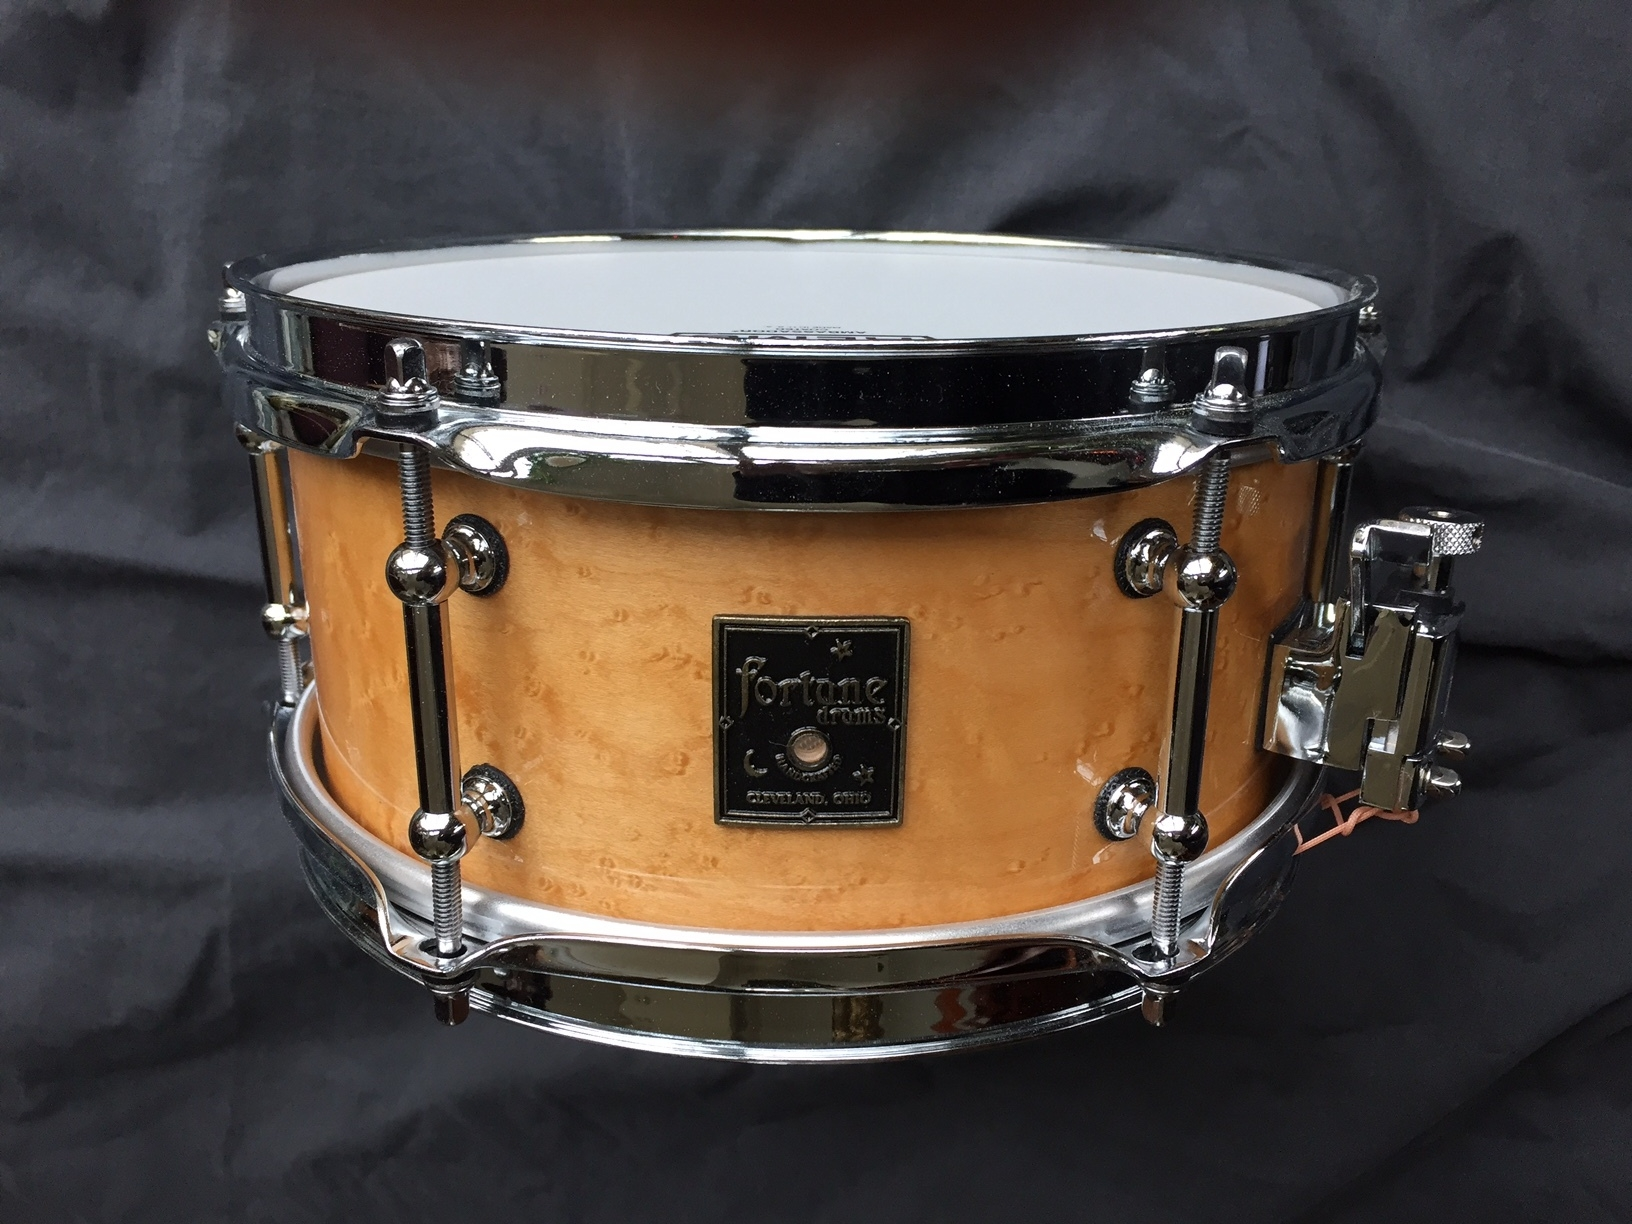 4.75 x 10 birdseye maple snare drum